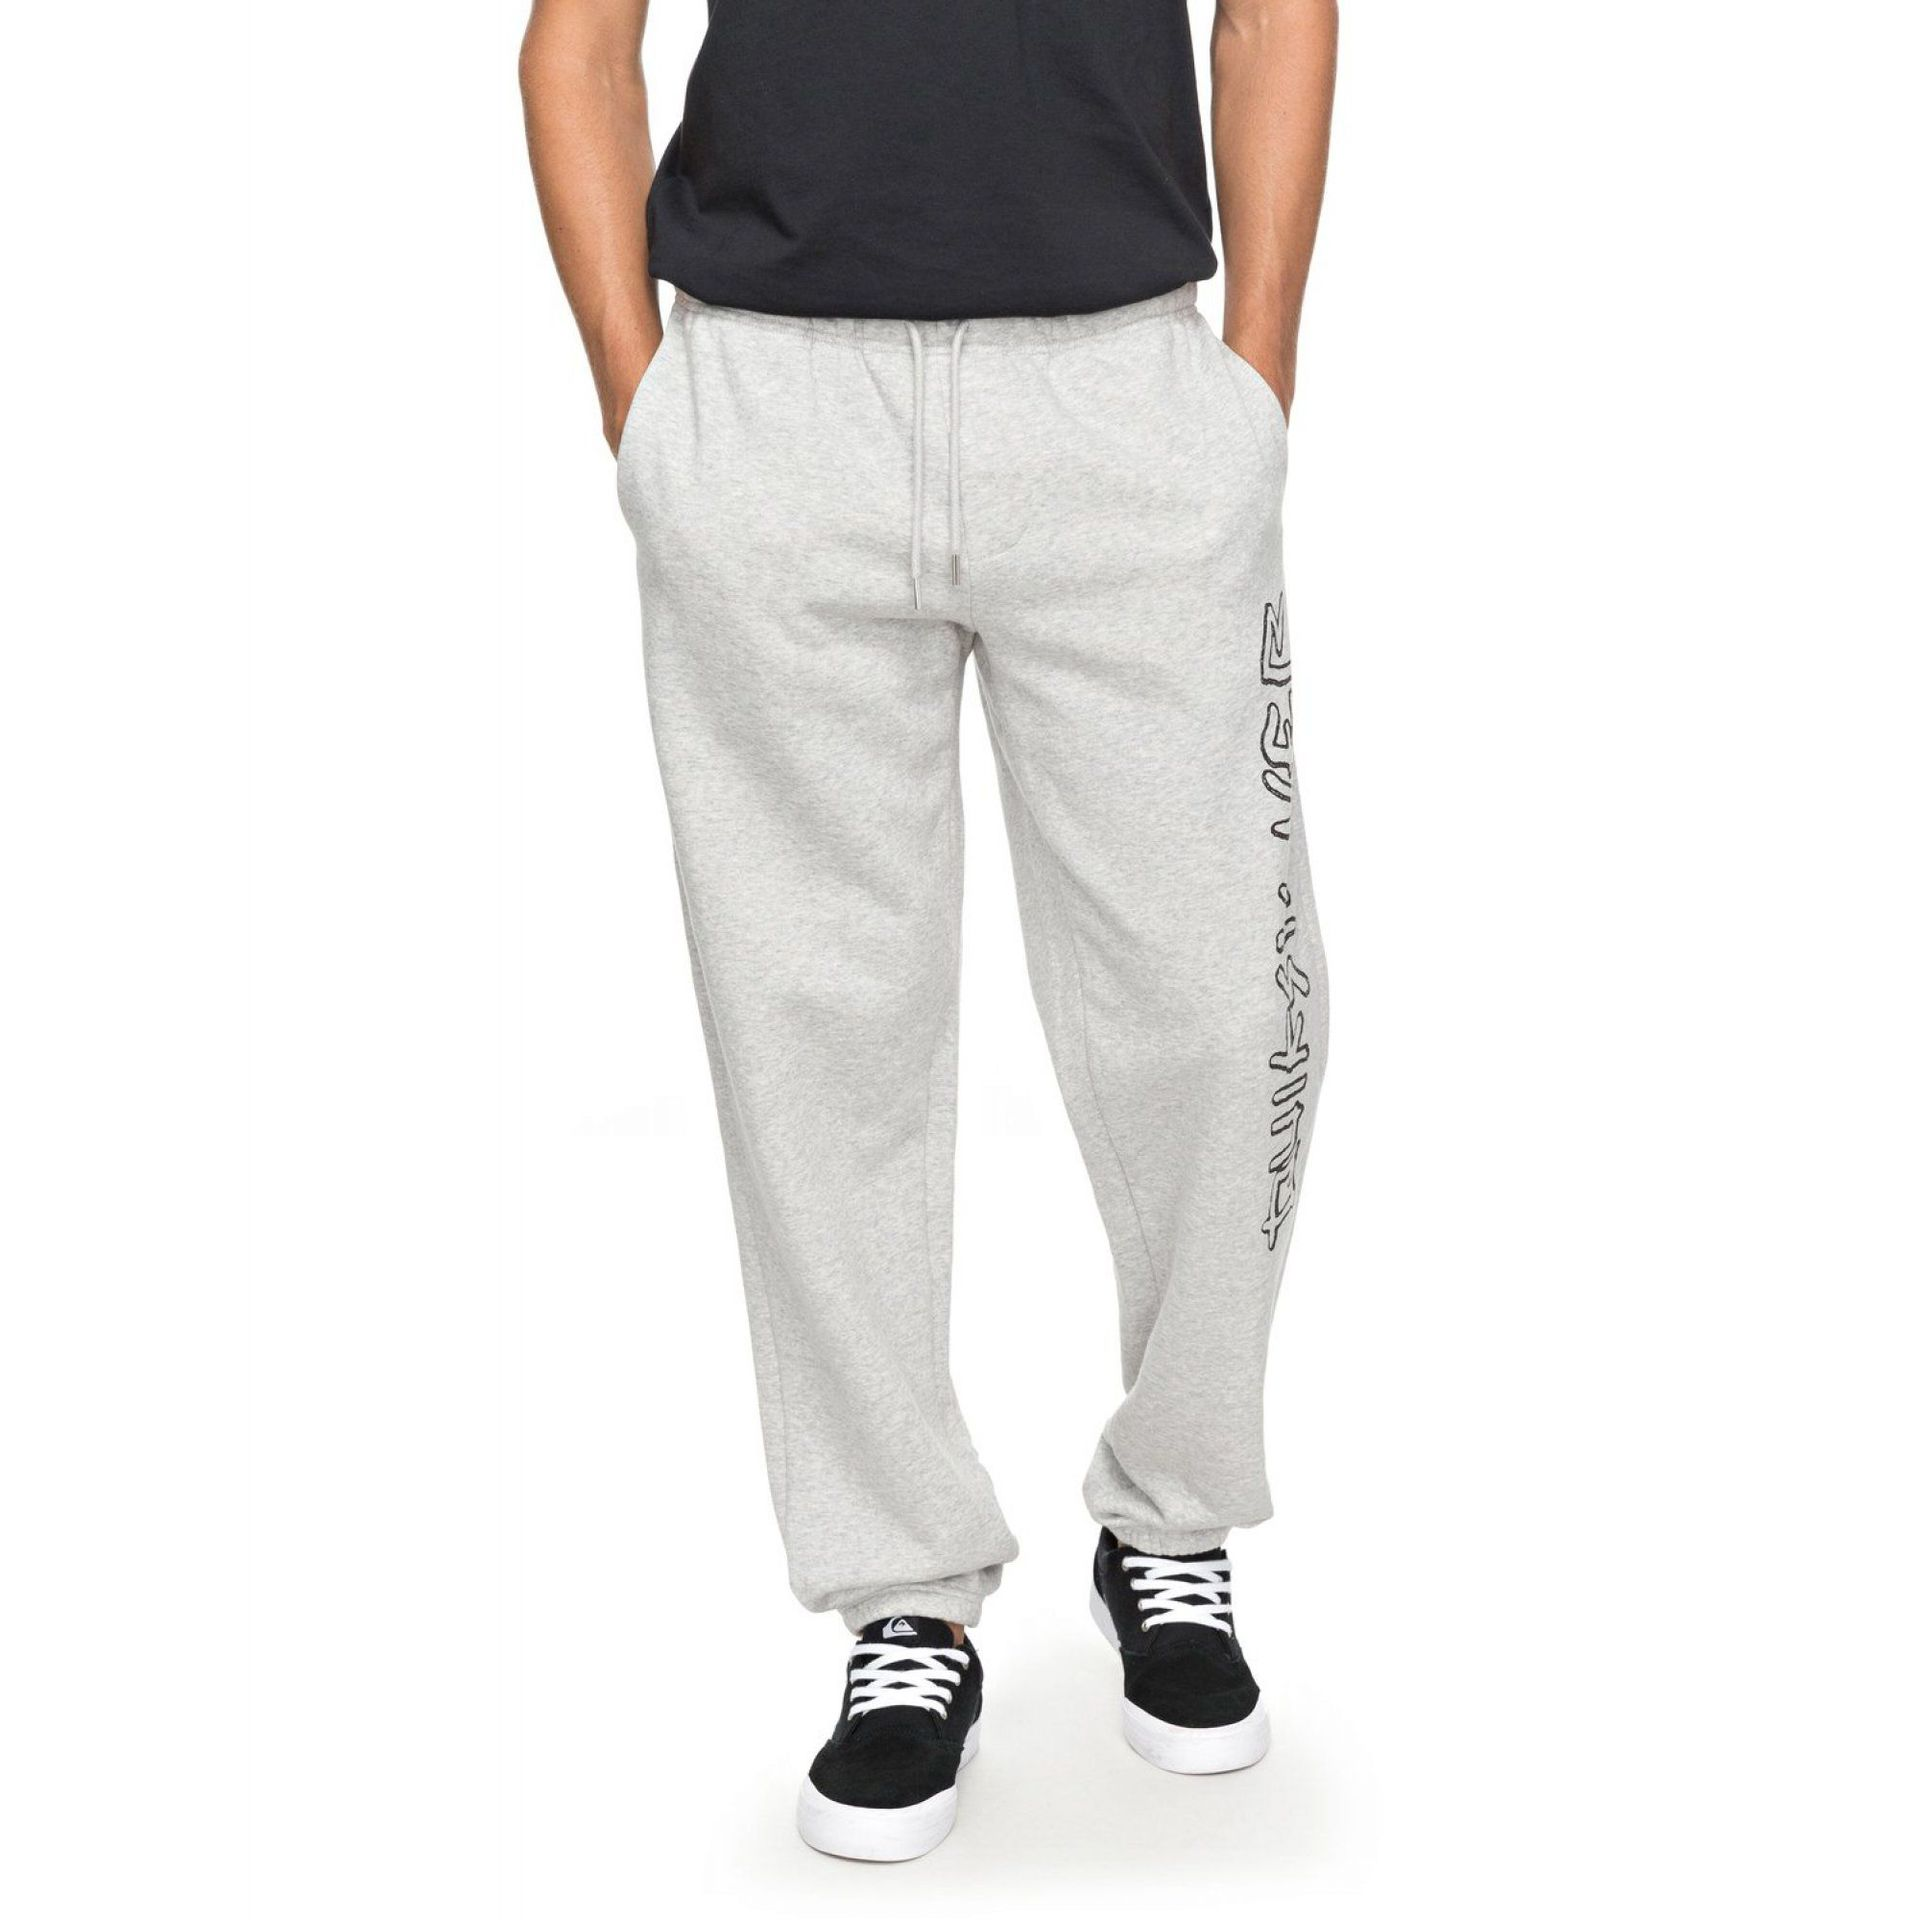 SPODNIE QUIKSILVER TRACKSUIT BOTTOMS LIGHT GREY HEATHER